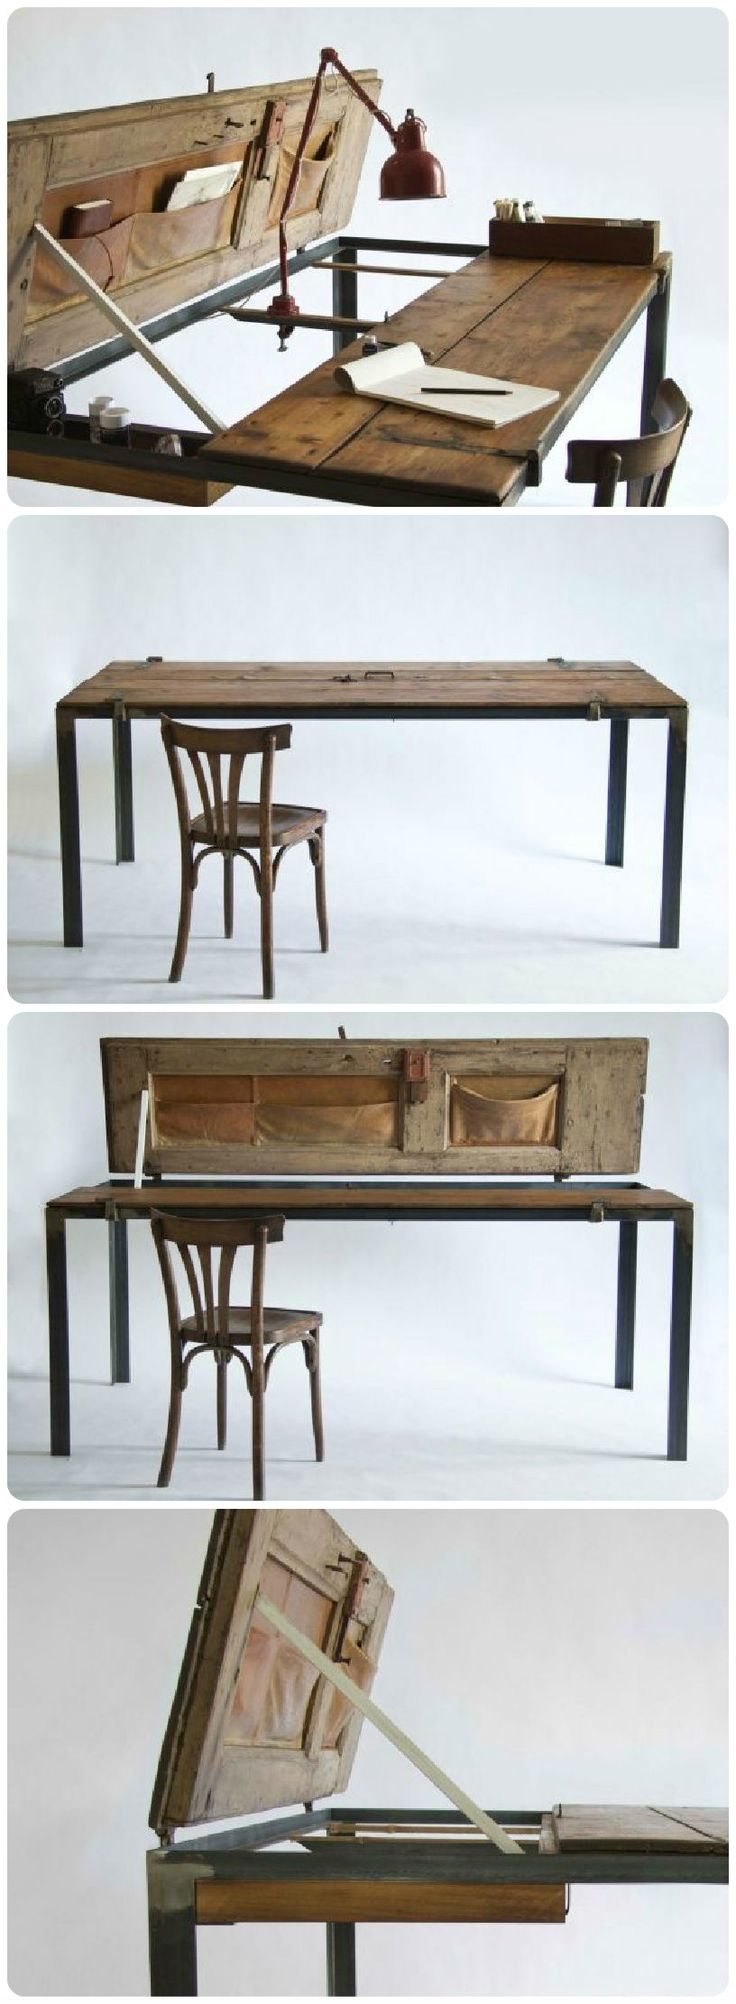 Reclaimed Wood Furniture by Manoteca. Best 25  Reclaimed furniture ideas on Pinterest   Wood on walls